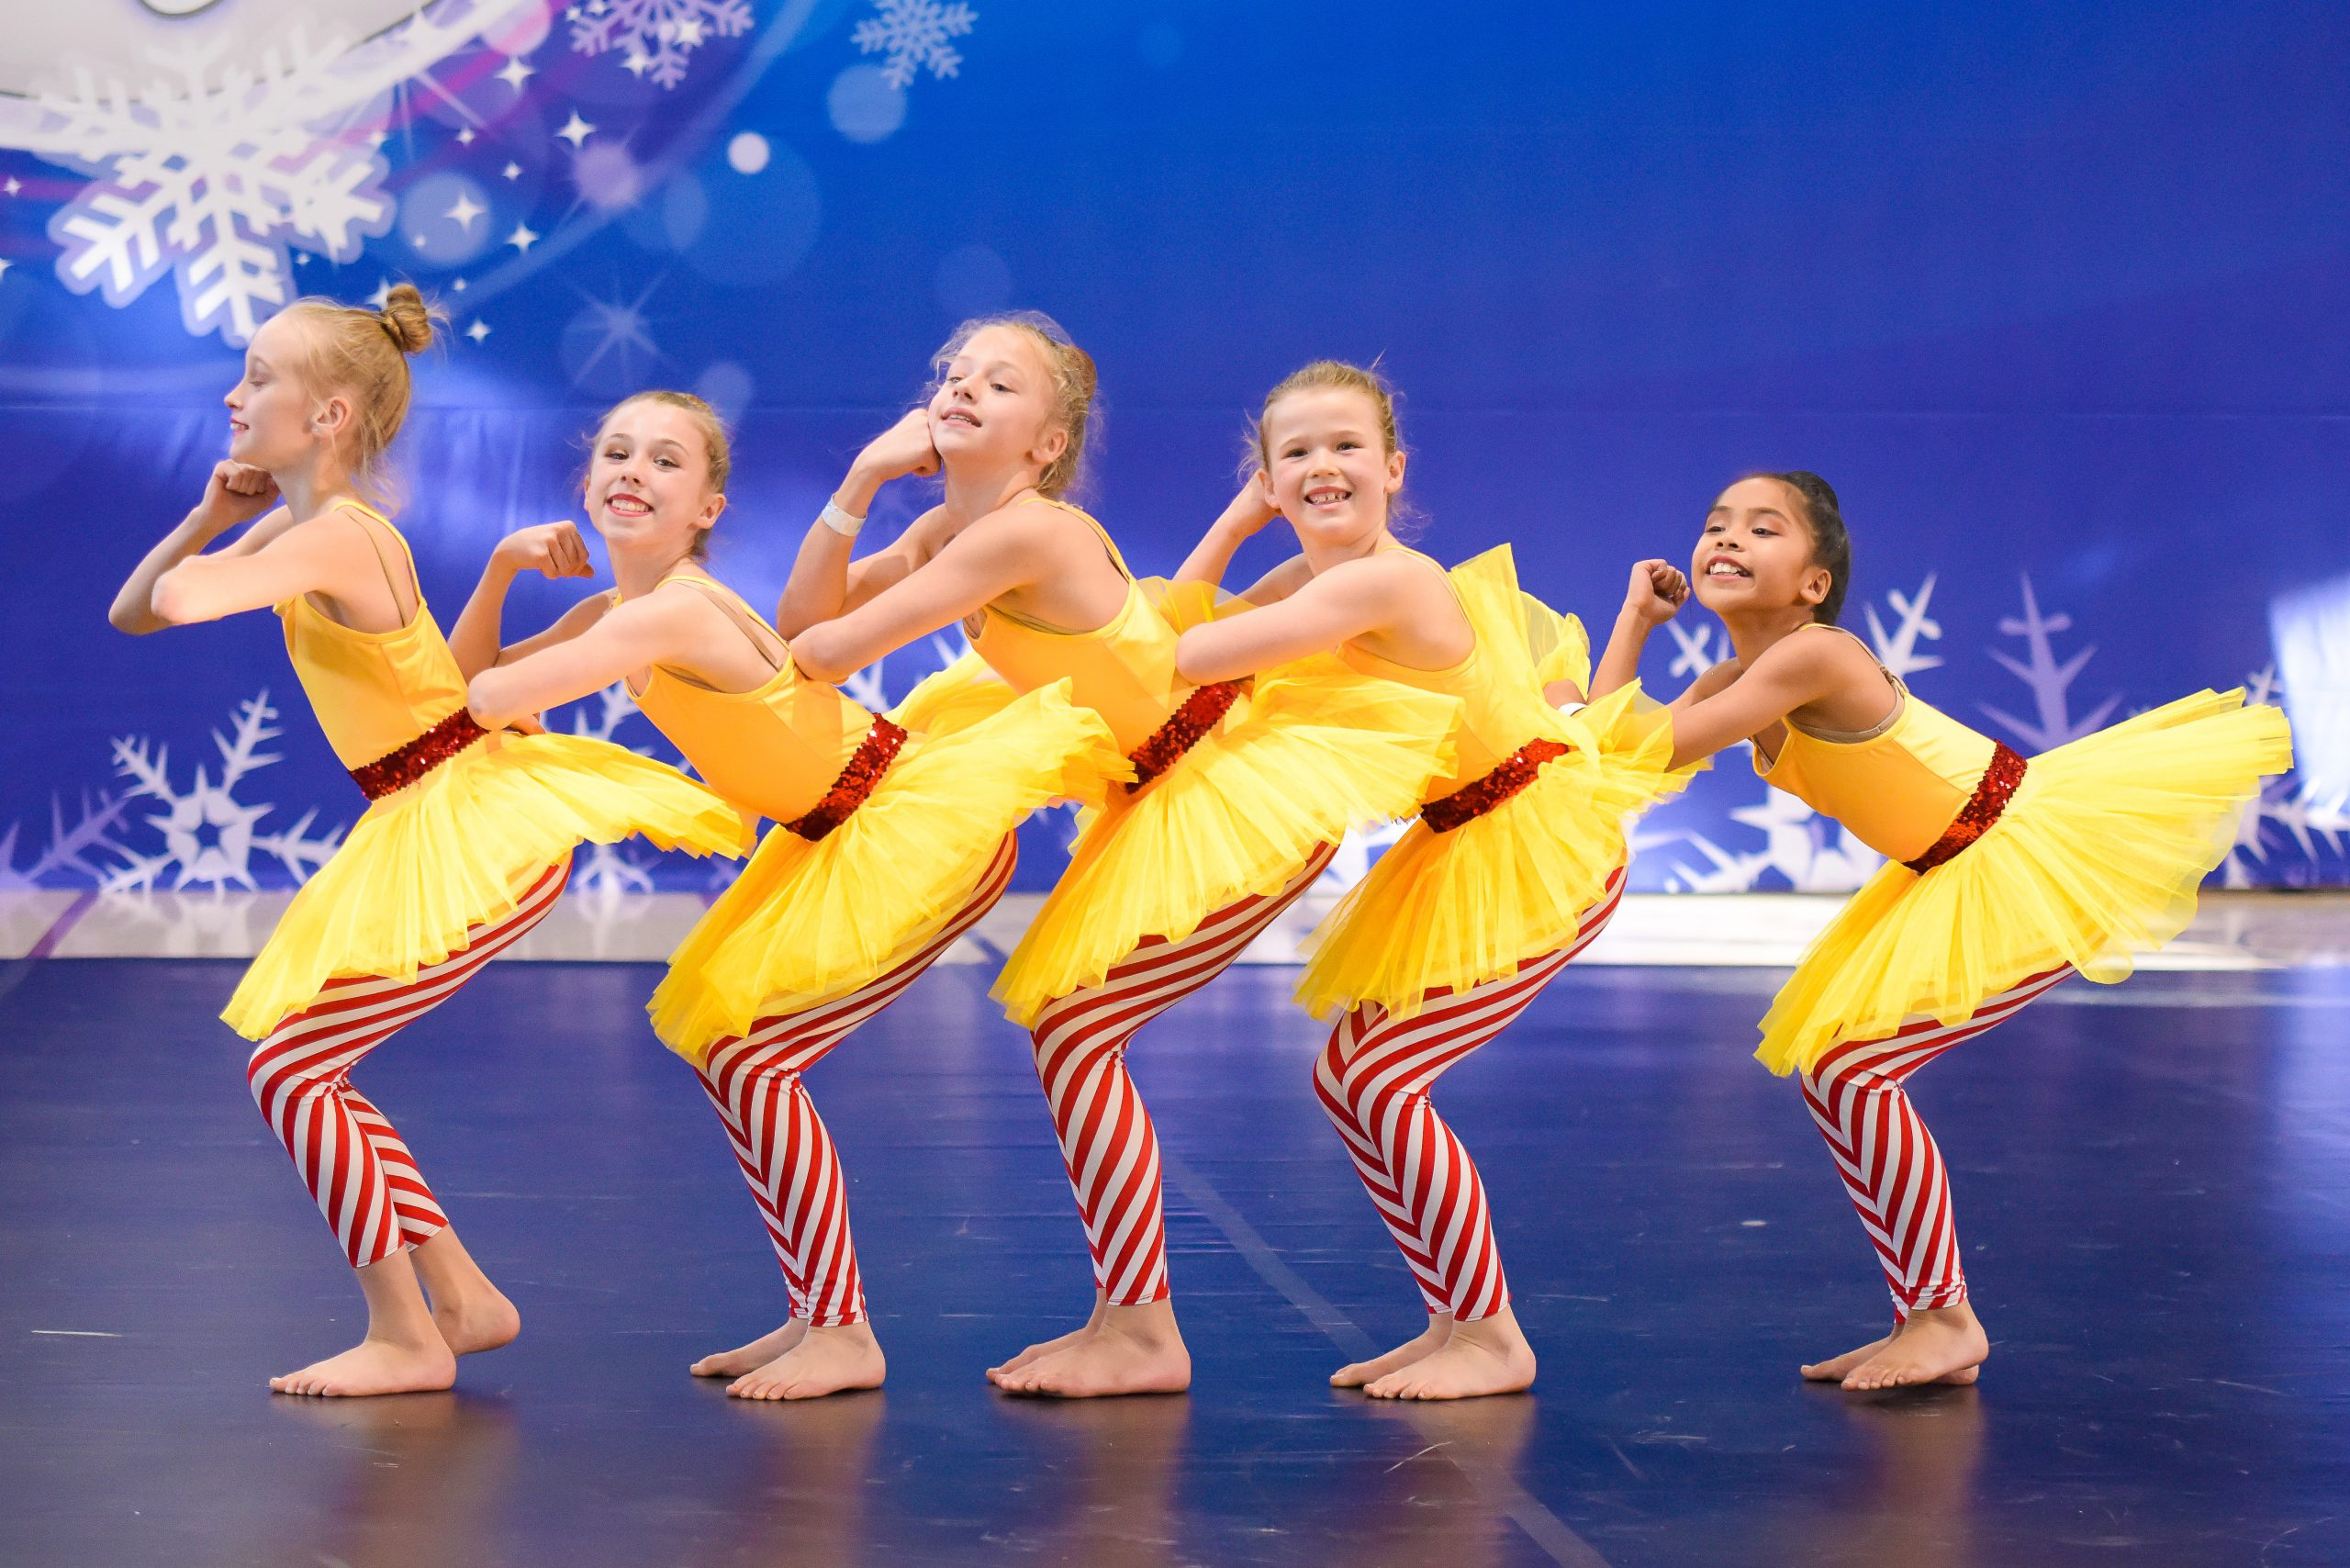 A dance team dressed in yellow, white and red take part in an ICE competition